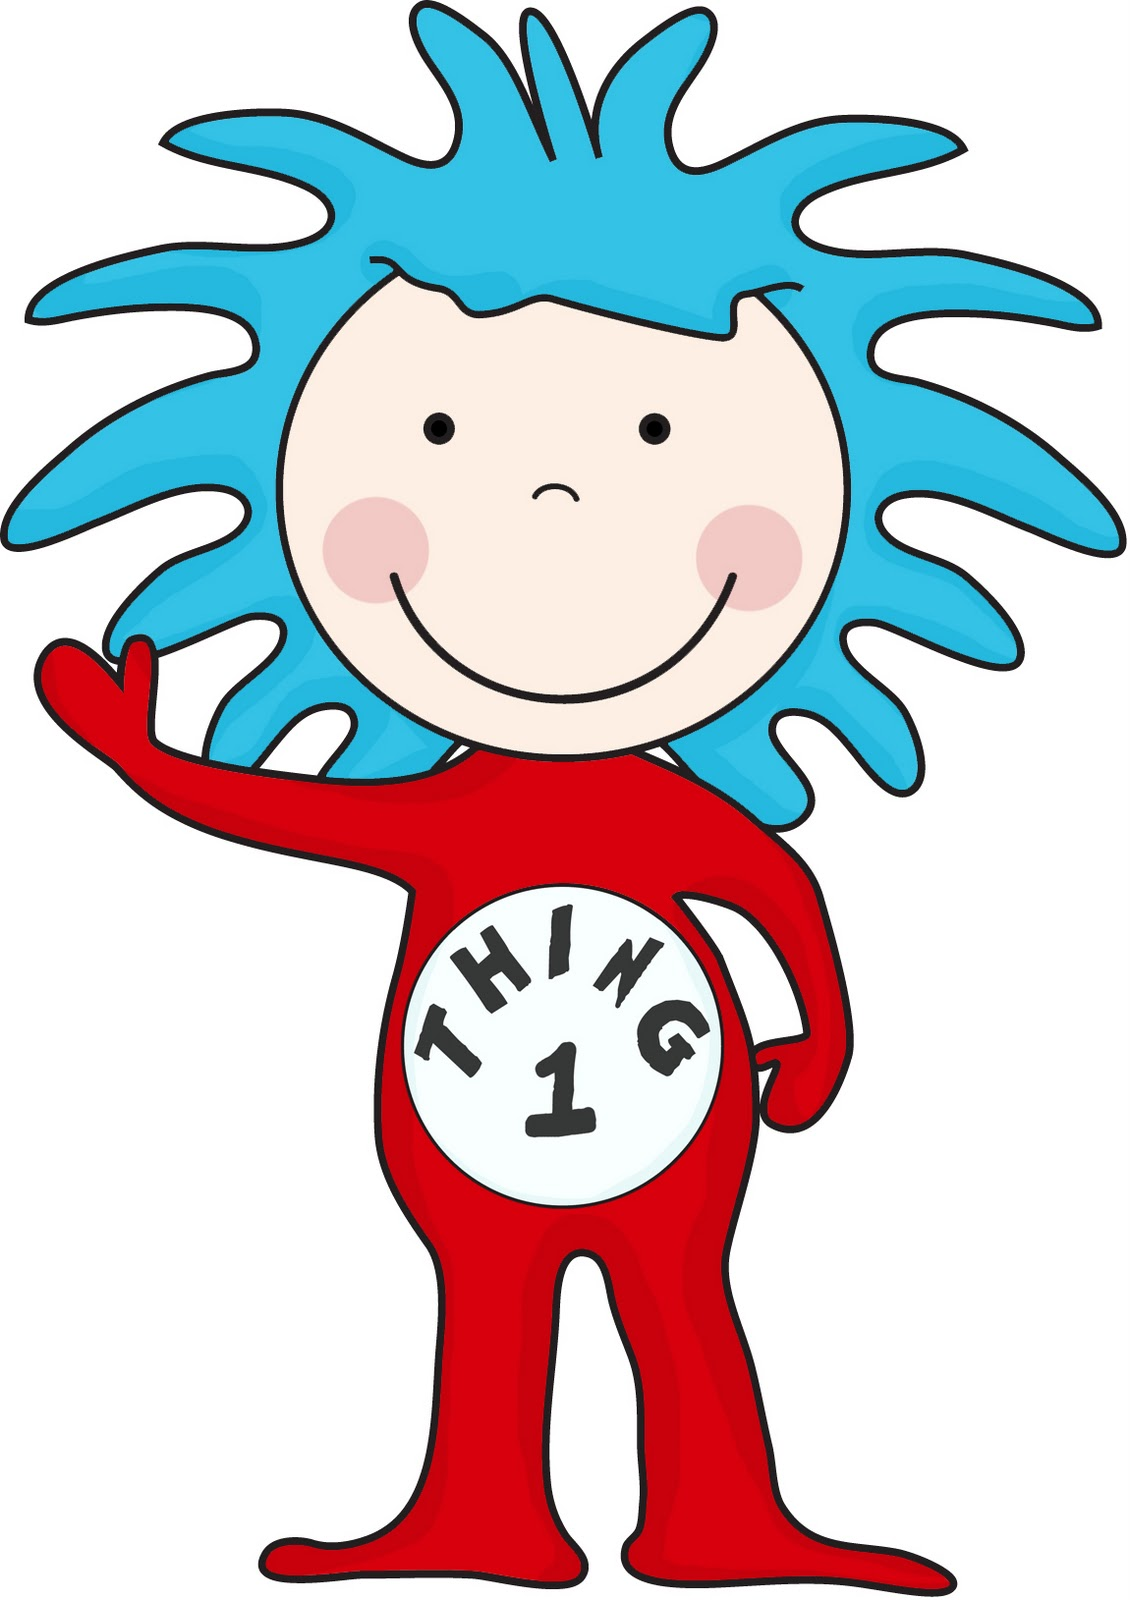 1130x1600 Images For Cat In The Hat Thing 1 And Thing 2 Clip Art Clipart